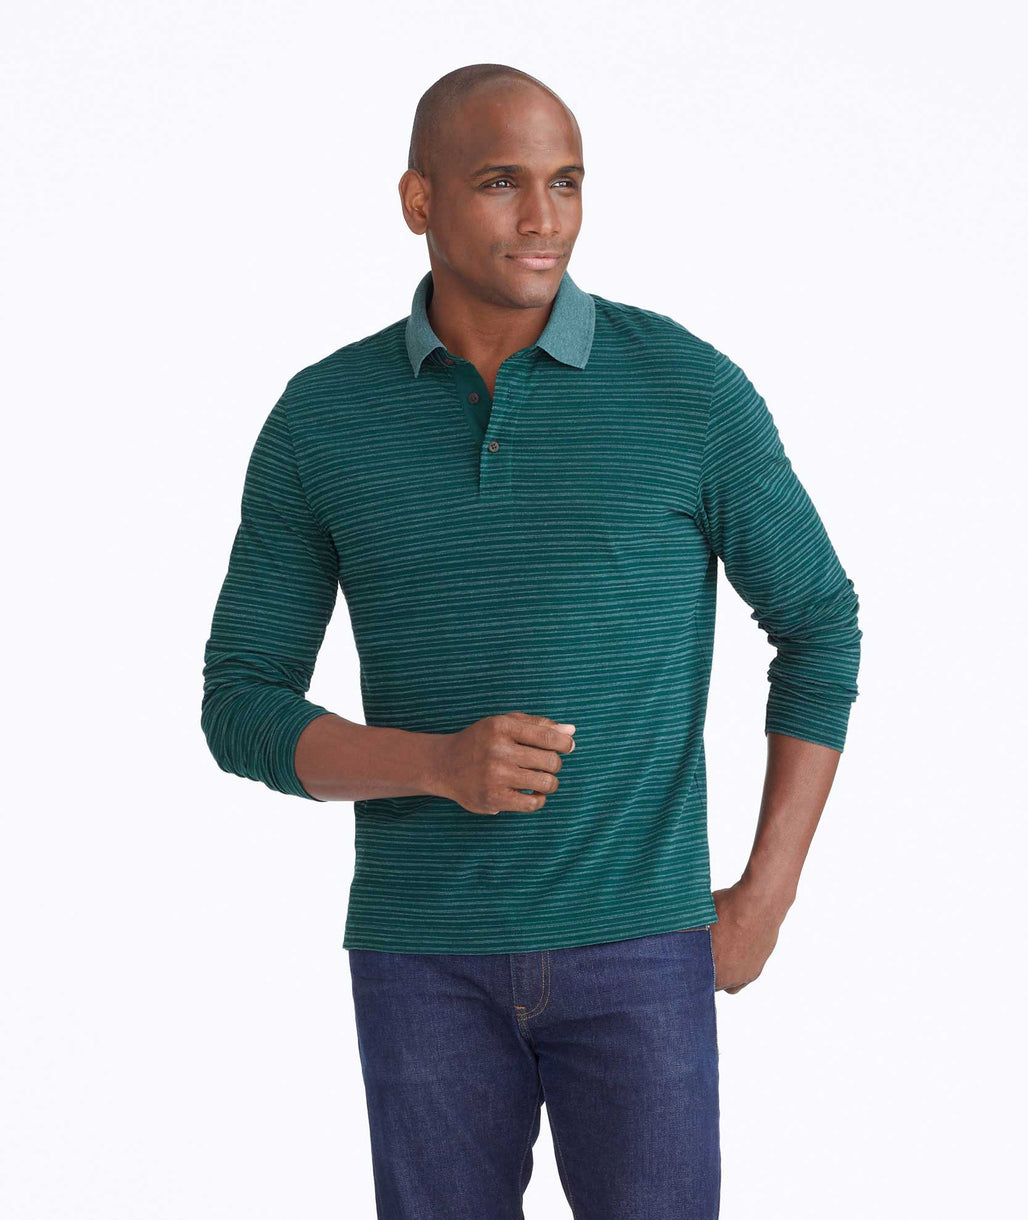 Model wearing a Green Striped Long-Sleeve Polo